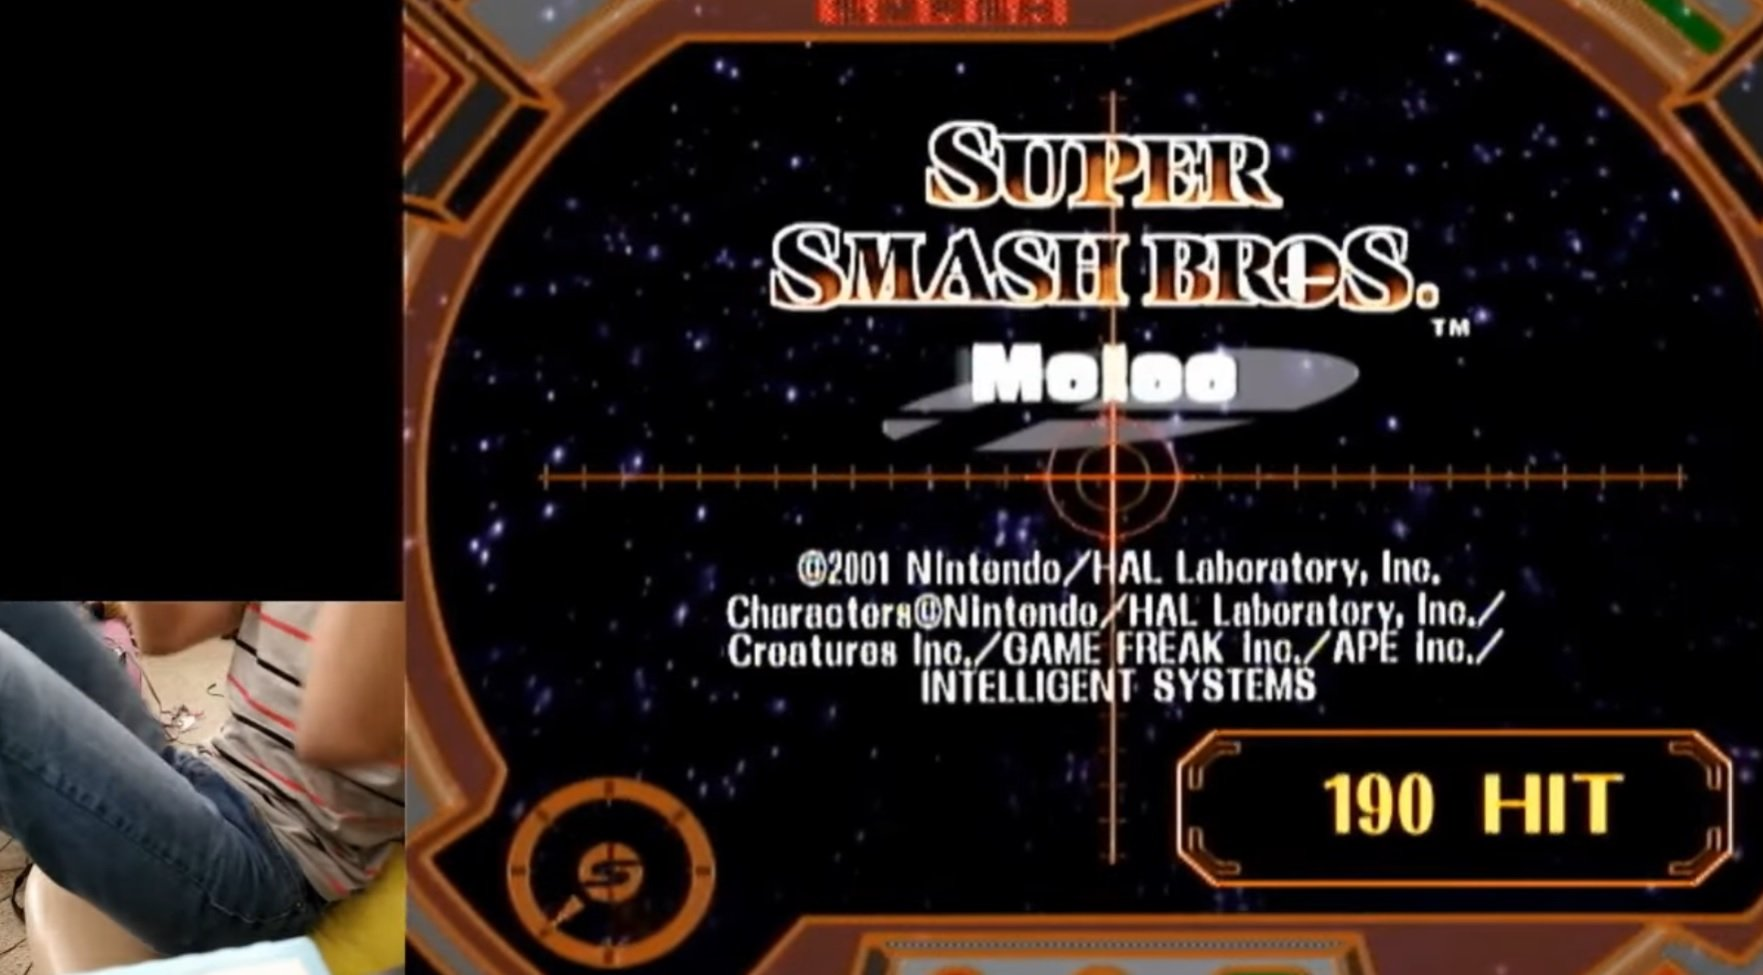 This hotshot hit every single name in the Smash Melee credit shooting minigame screenshot